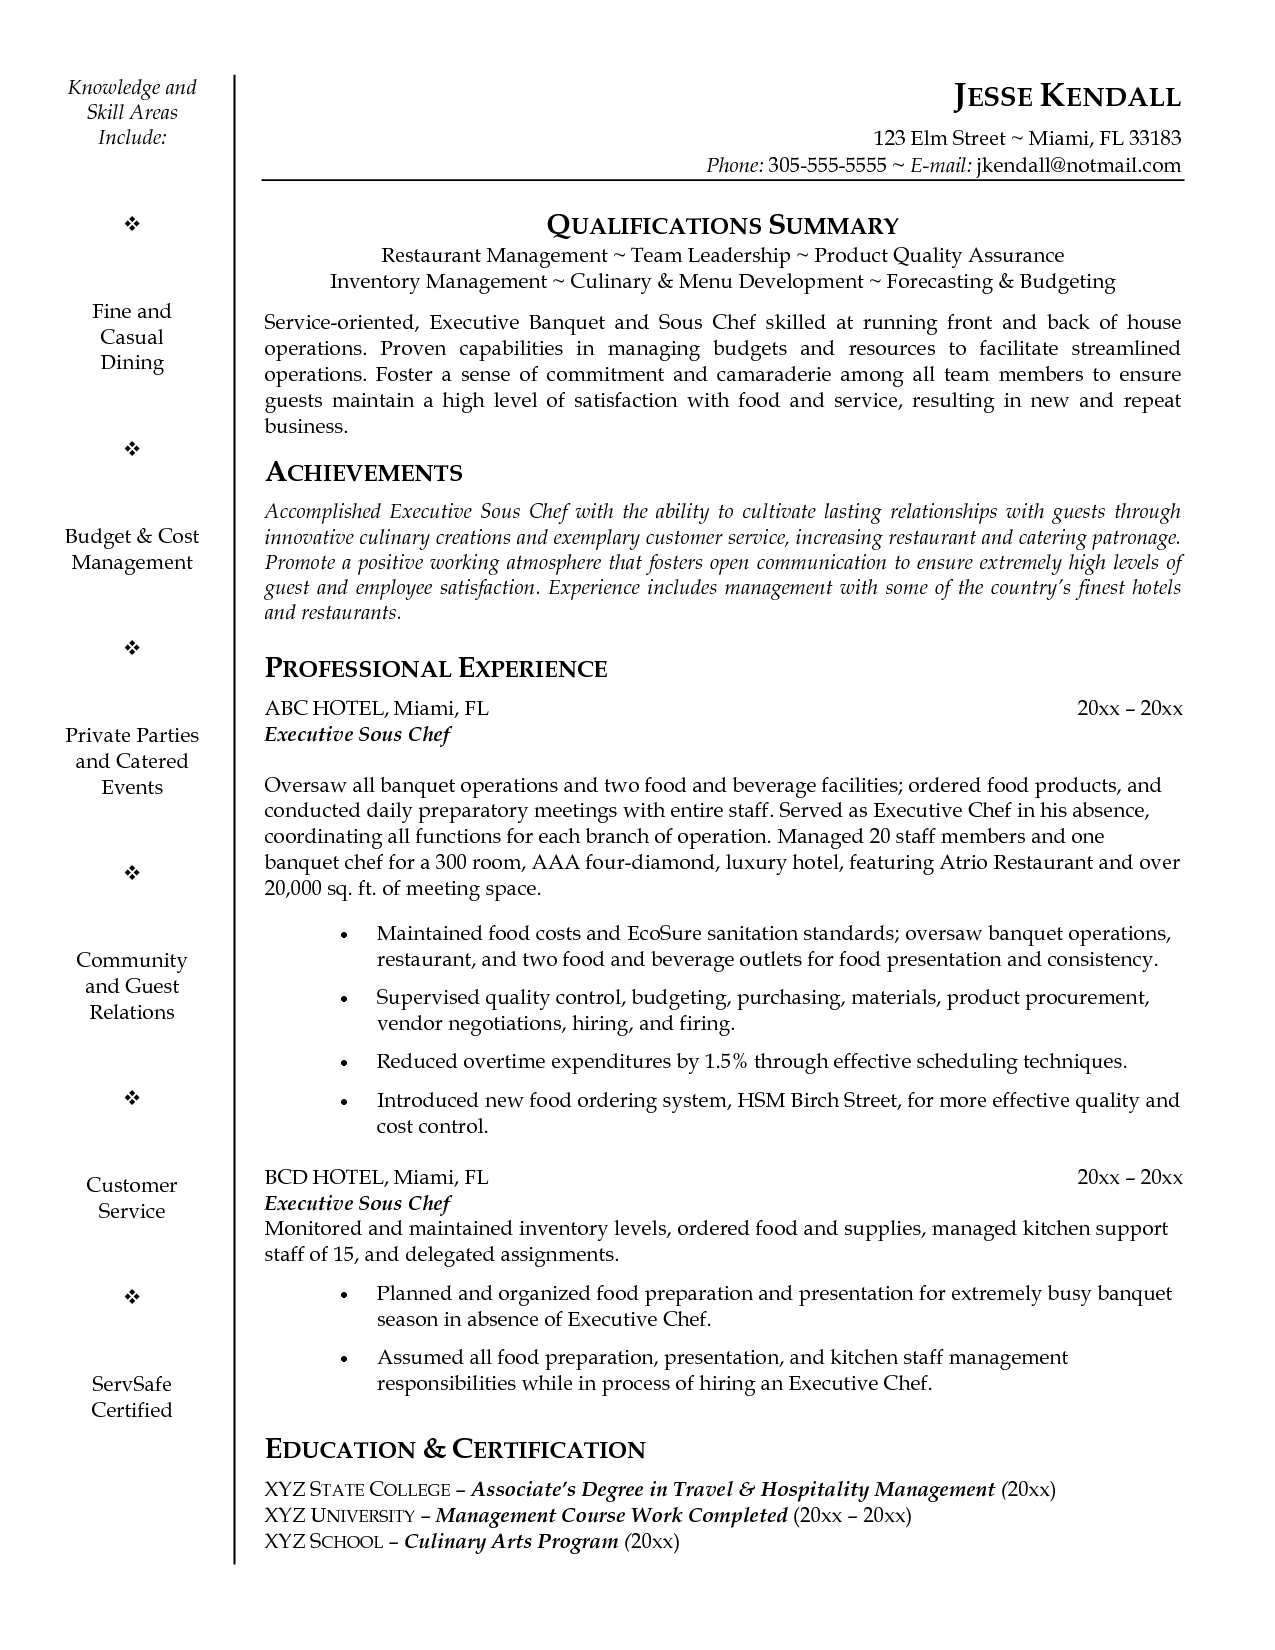 Executive Chef Resume Sous Chef Resume Examples  Httpwwwjobresumewebsitesouschef